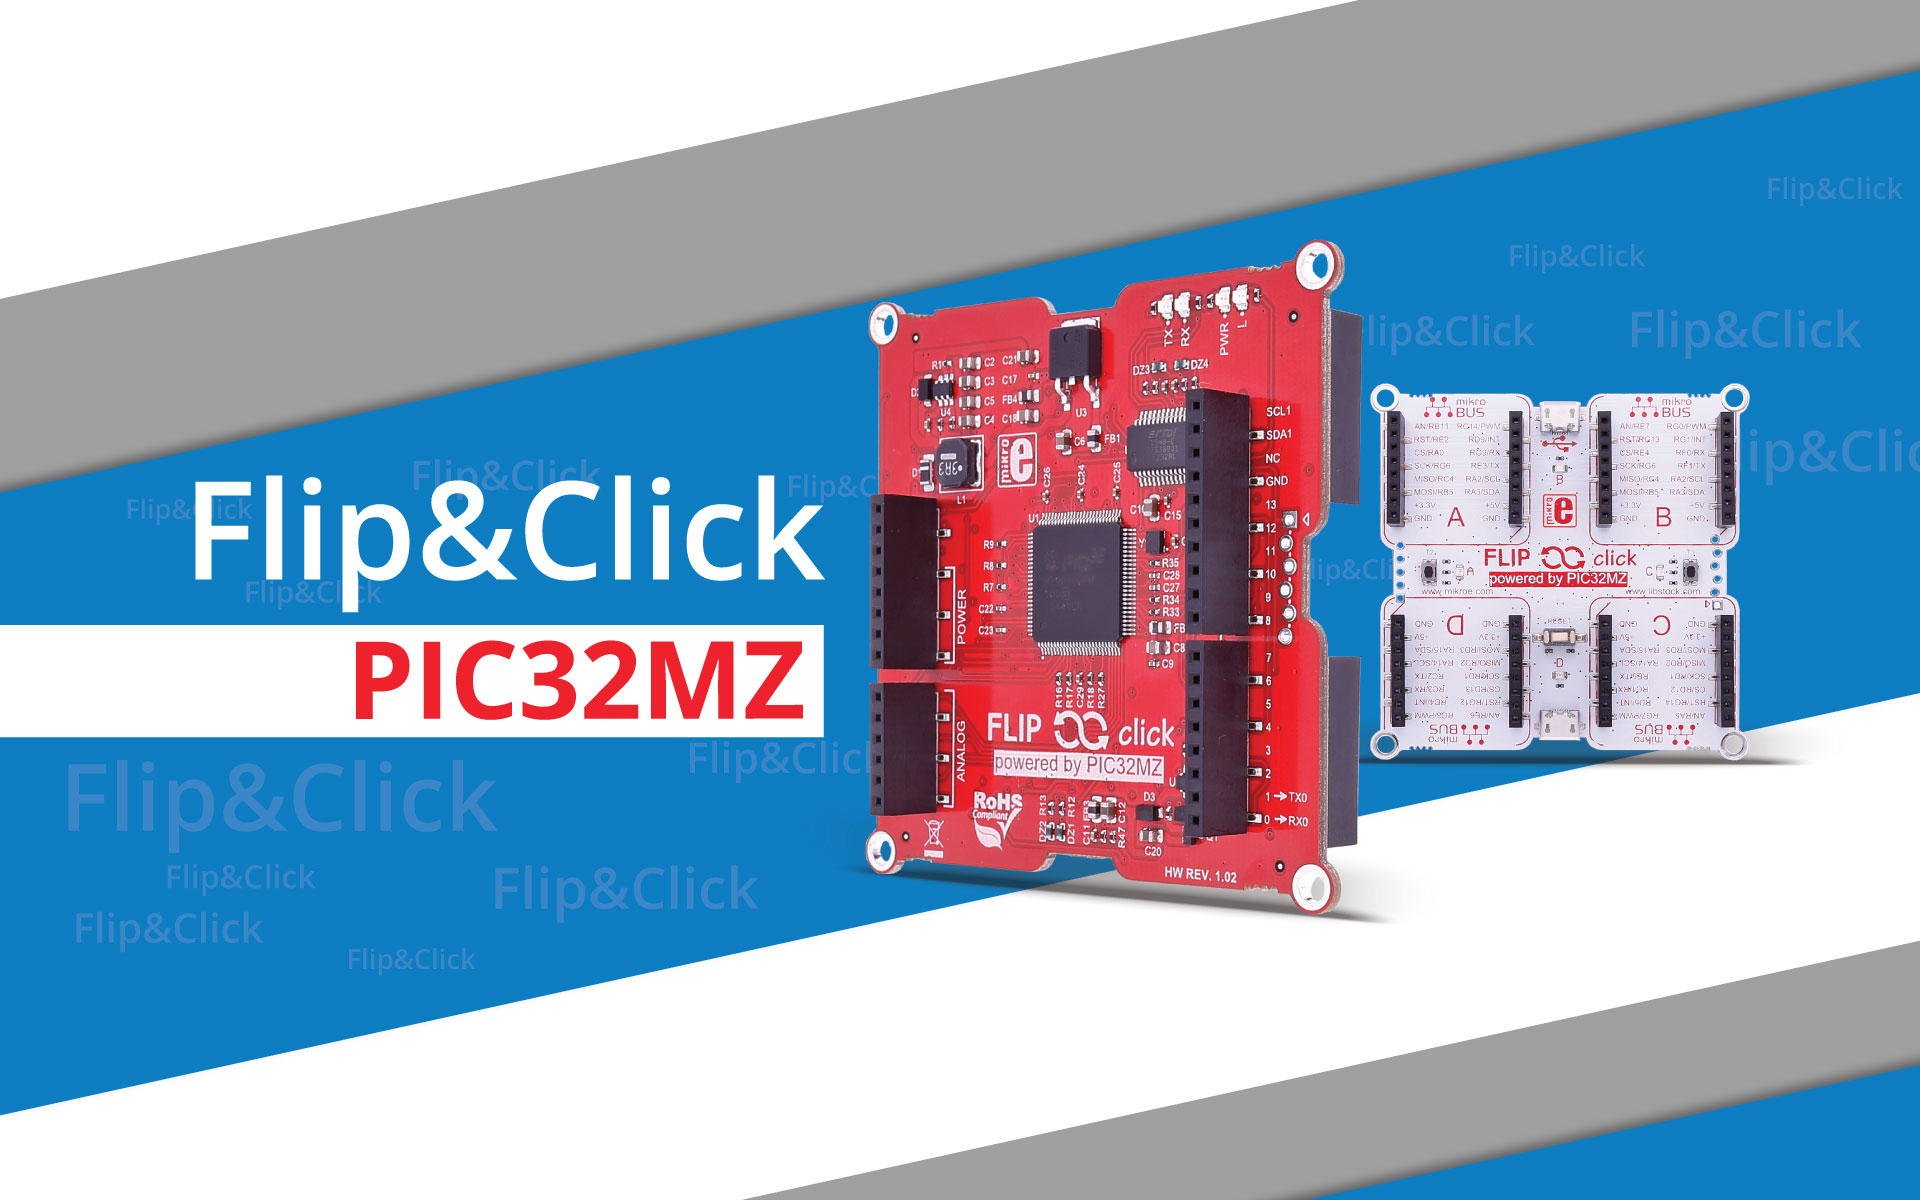 Flip&Click PIC32MZ - dual personality, endless possibilities